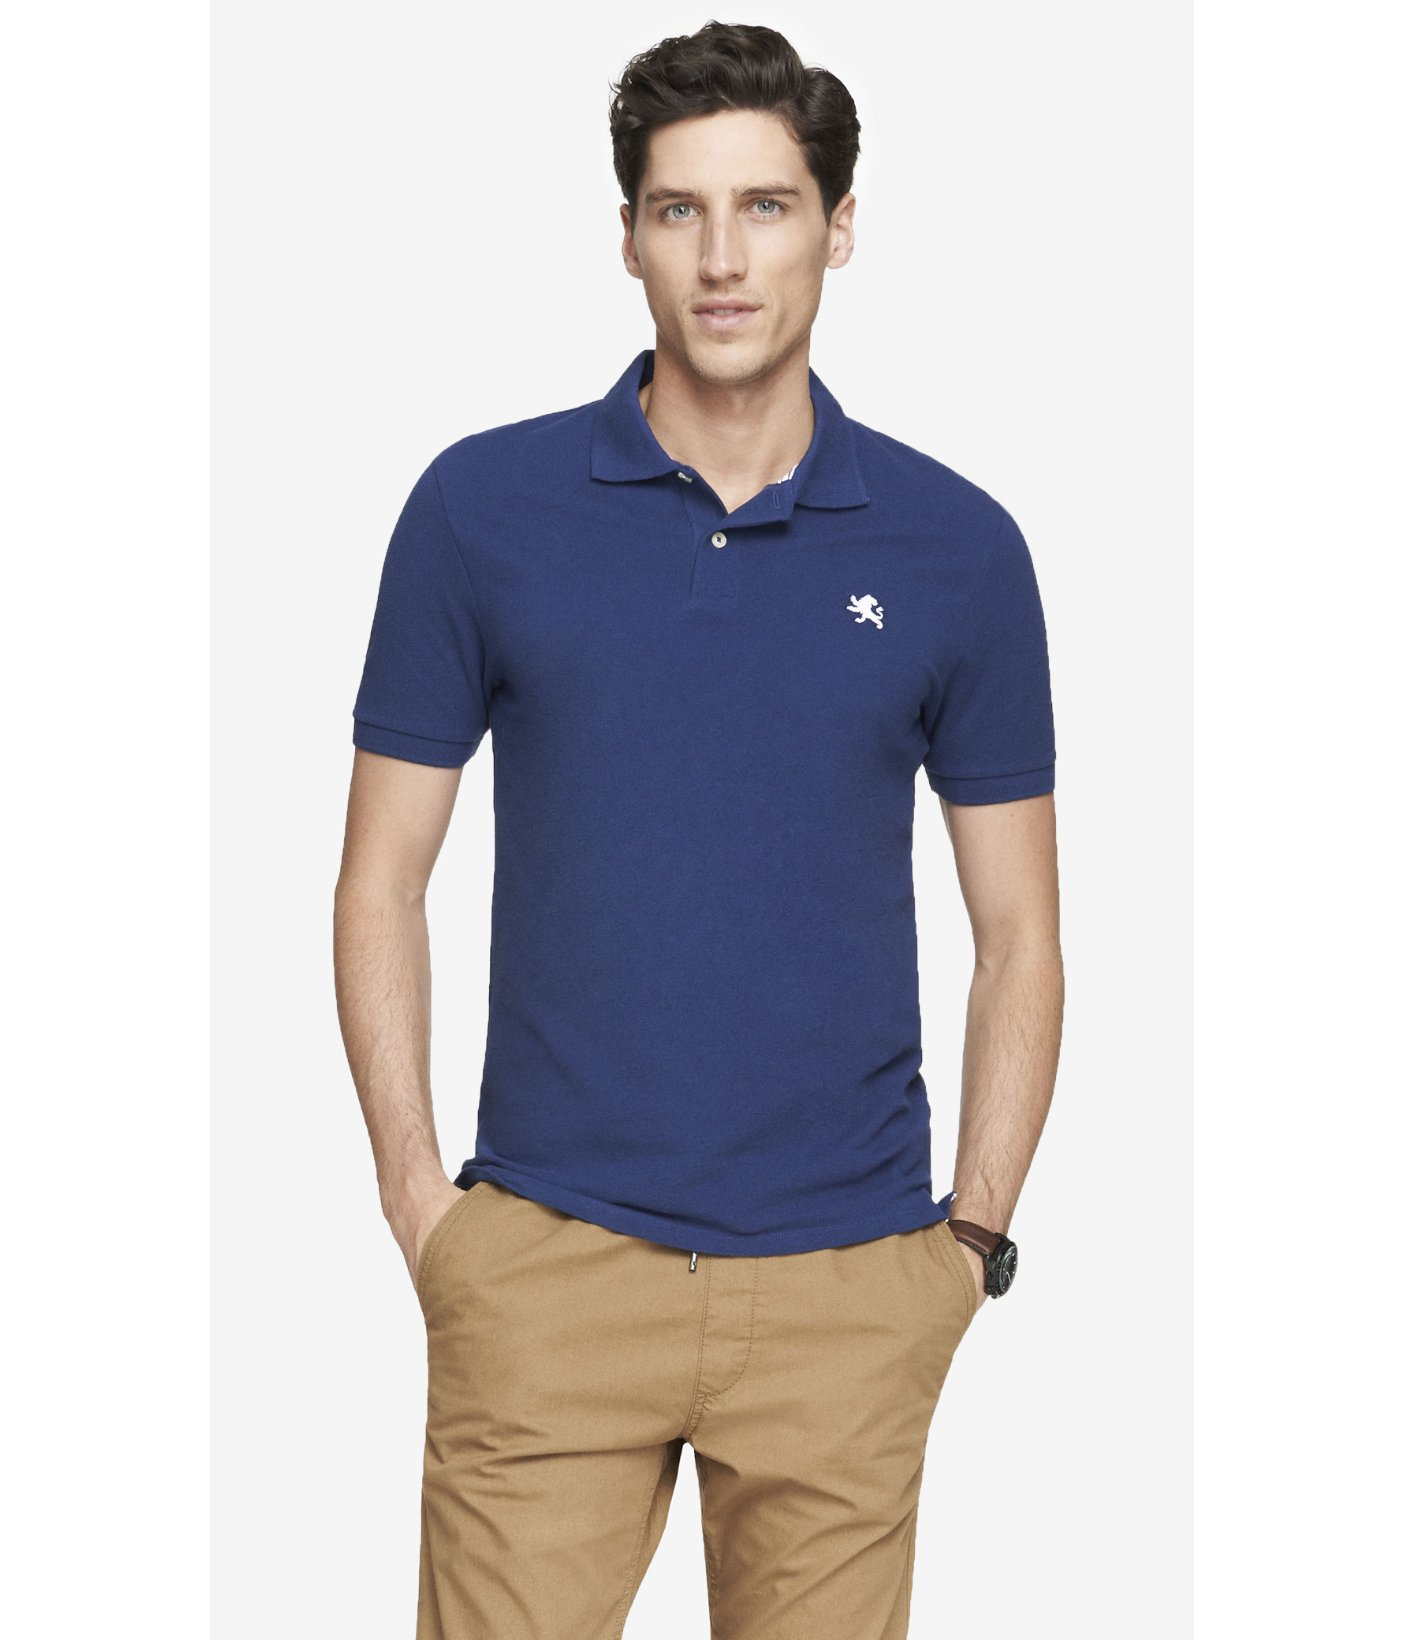 Lyst Express Fitted Small Lion Pique Polo In Blue For Men